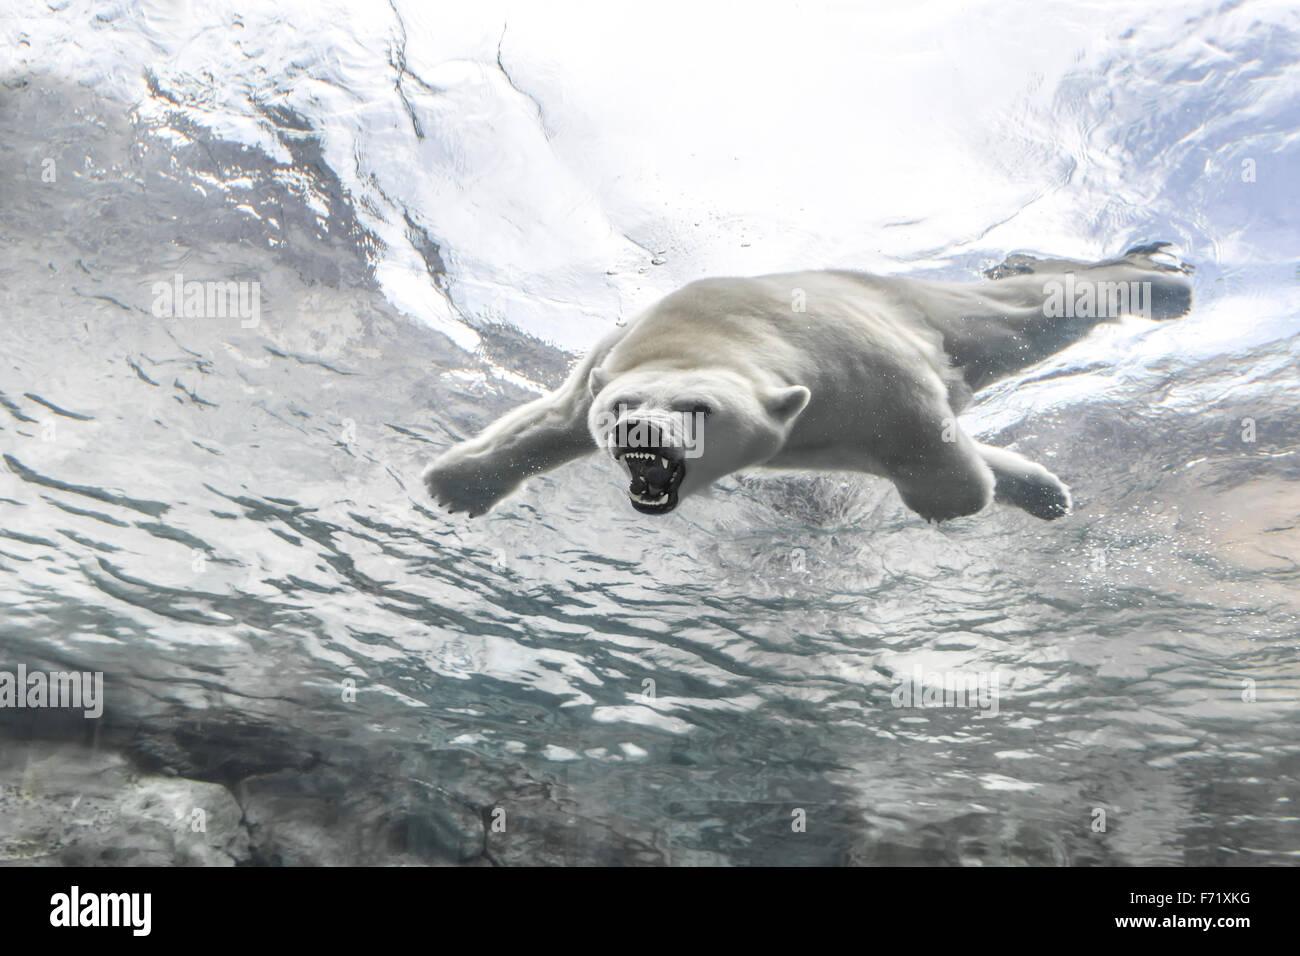 aggressive polar bear swimming underwater at the journey